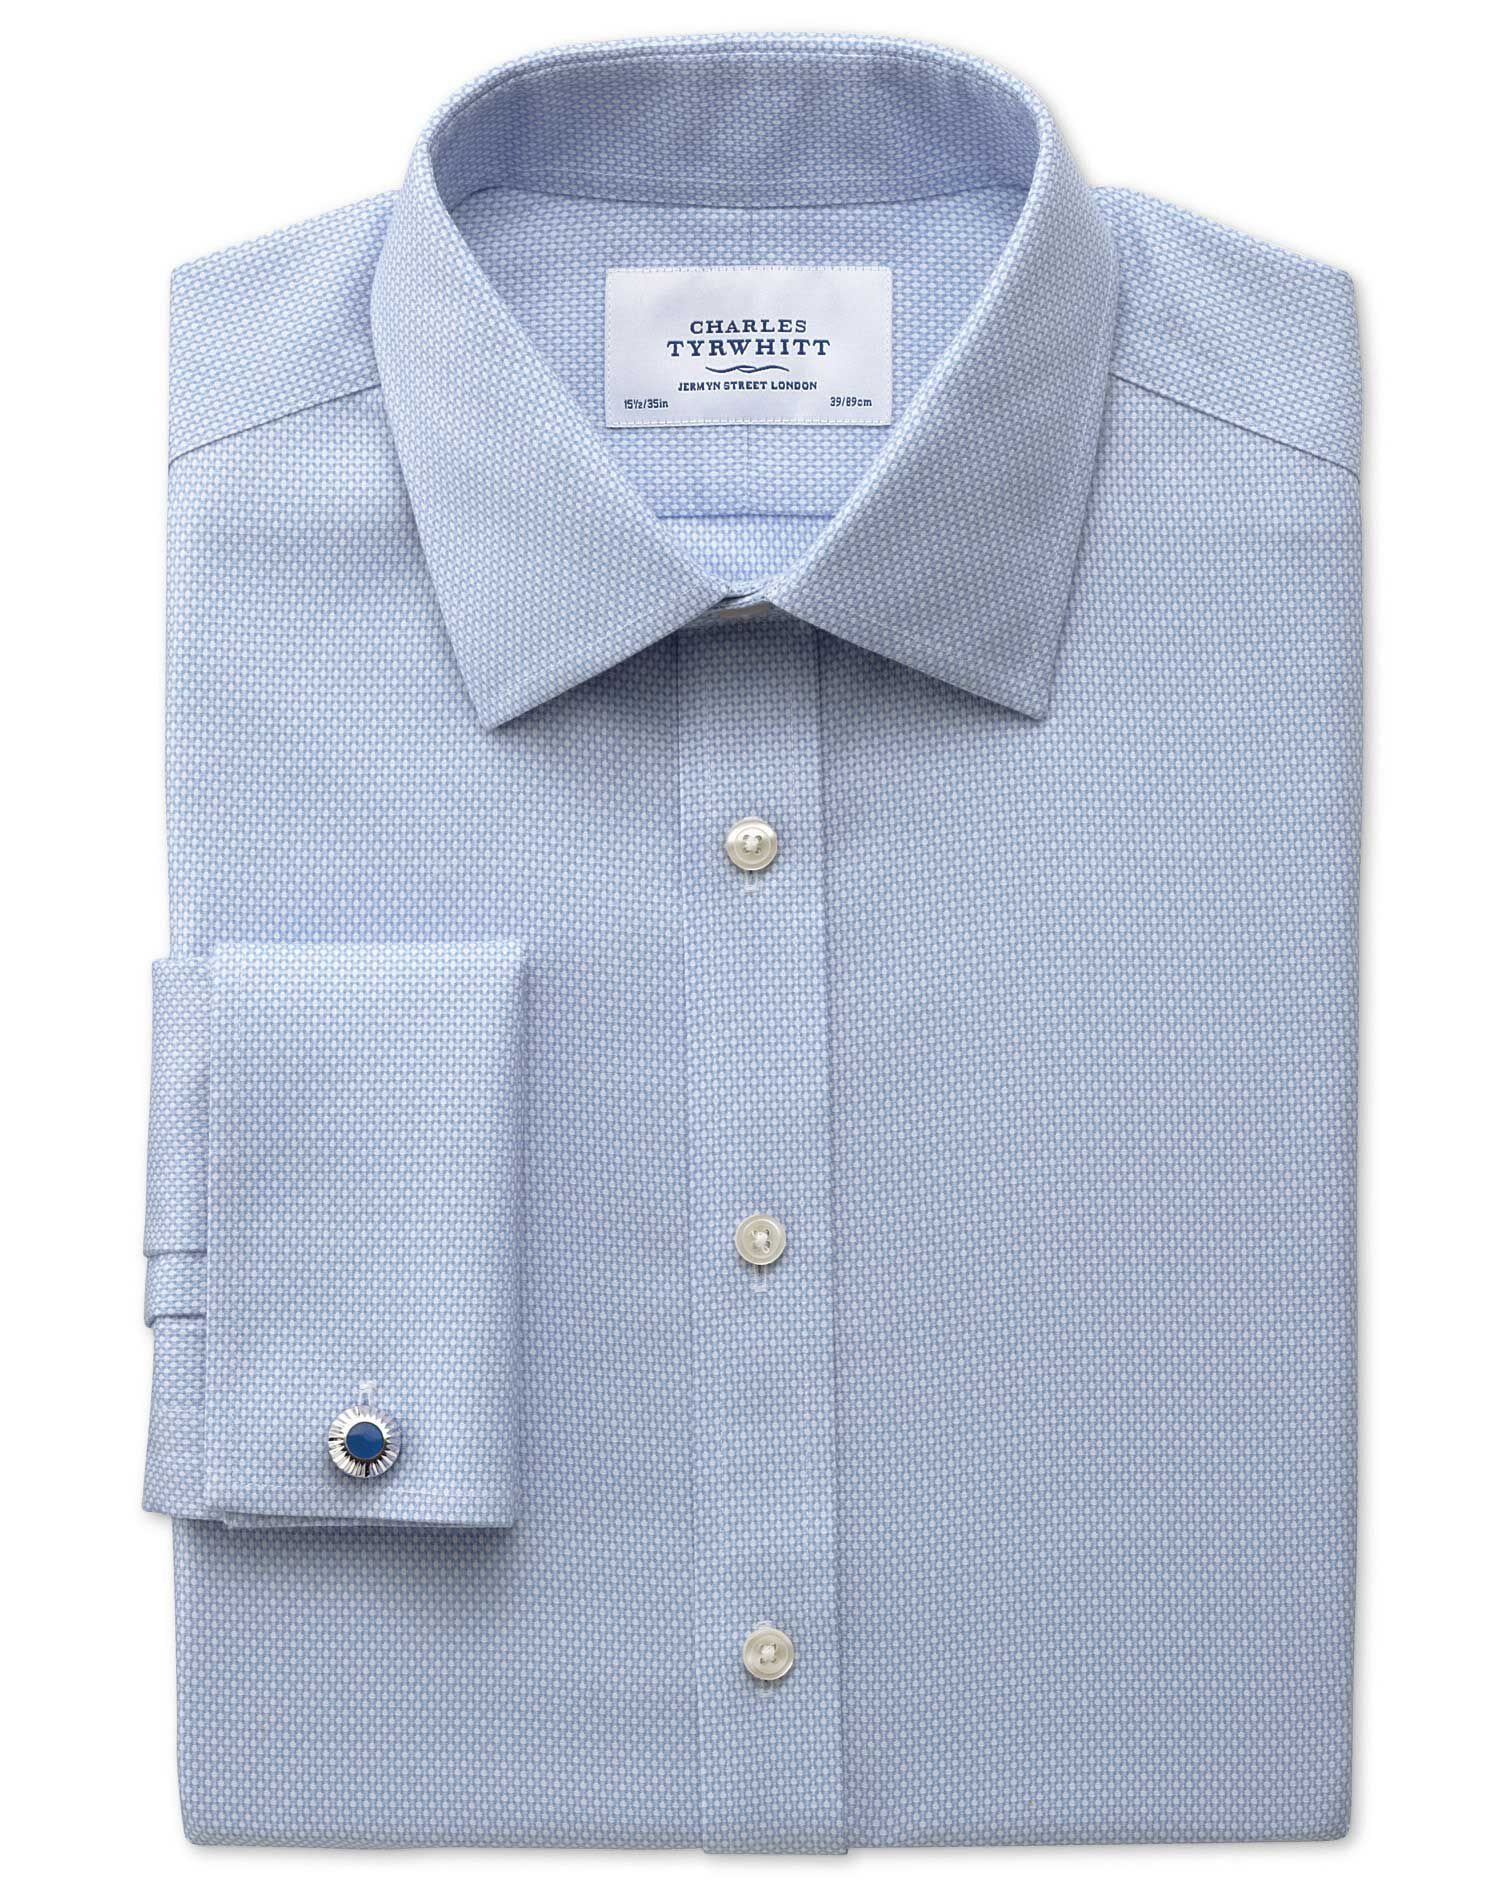 Slim Fit Non-Iron Honeycomb Sky Blue Cotton Formal Shirt Double Cuff Size 15/35 by Charles Tyrwhitt